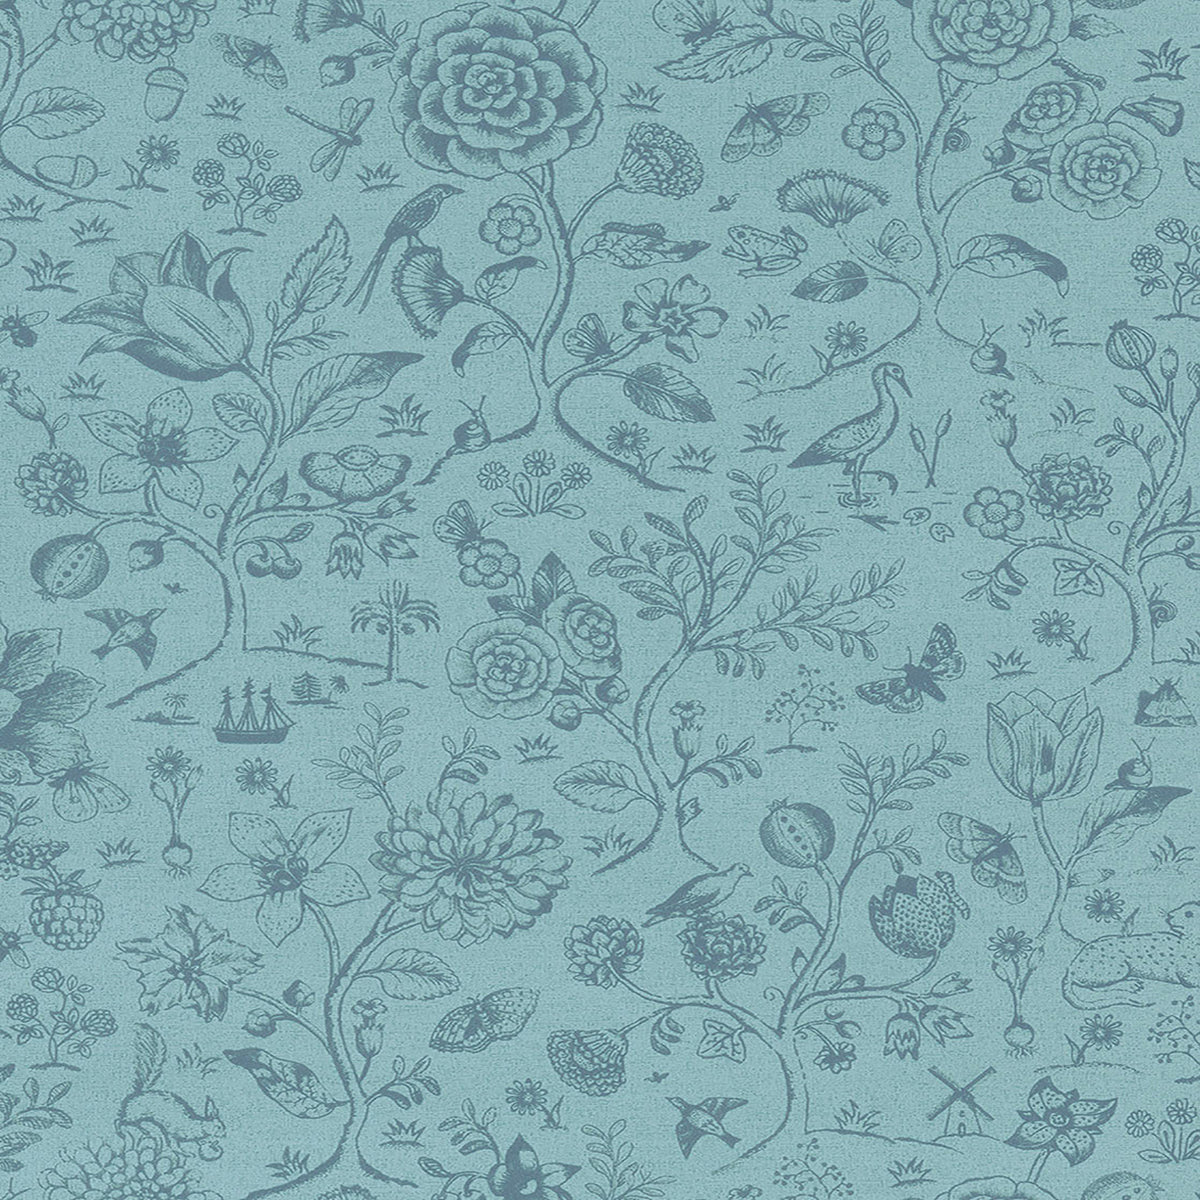 Ambroos Blue Woodland Wallpaper